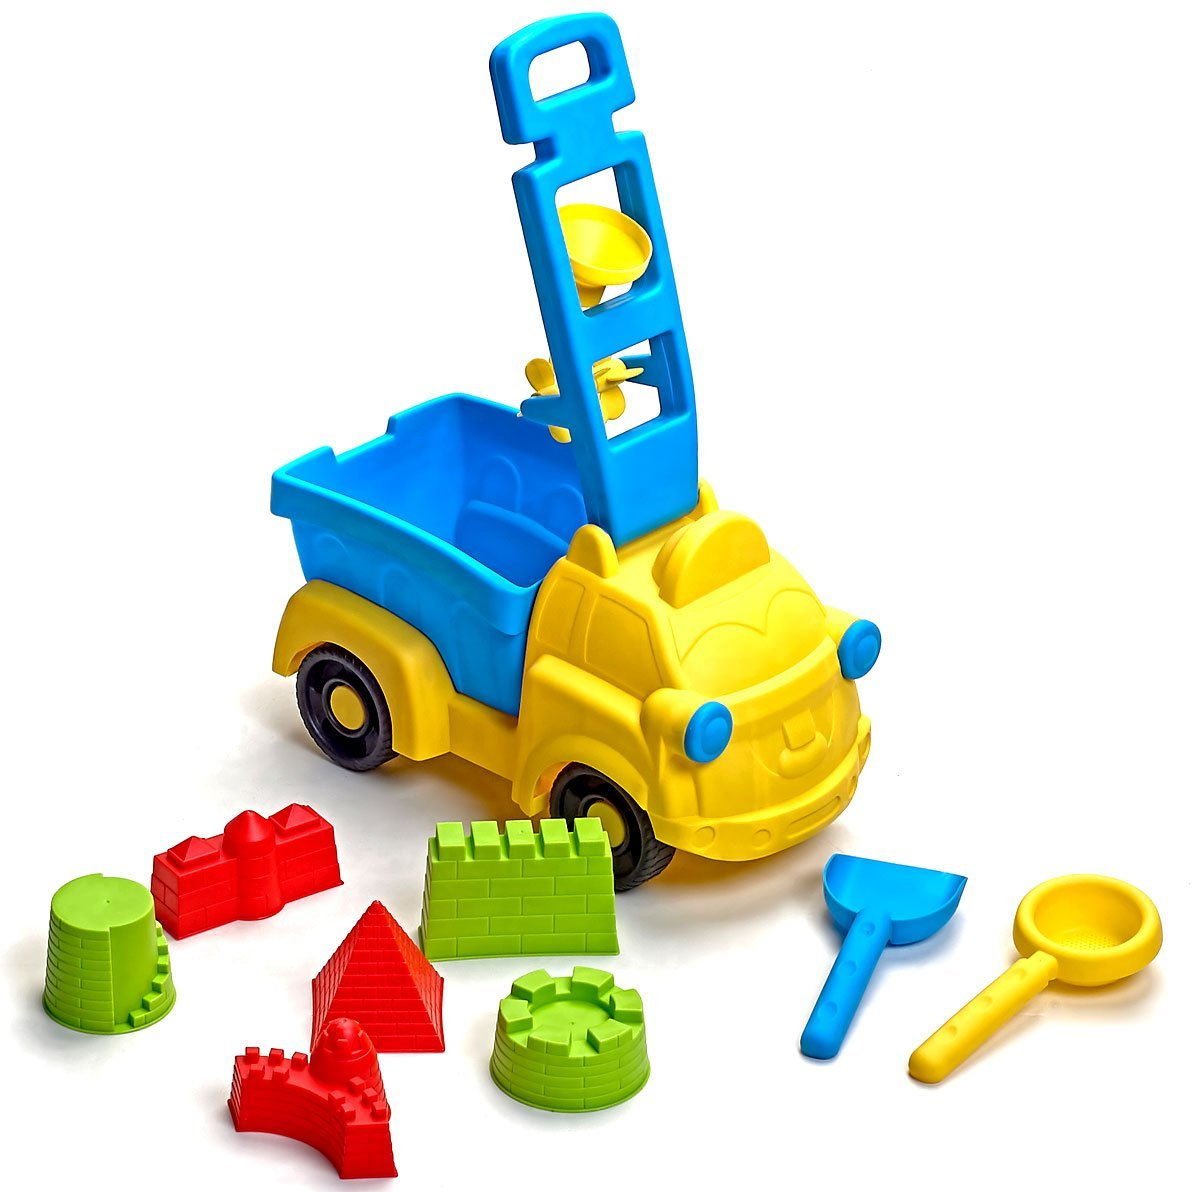 Beach Toys Deluxe Set 9 pieces Large Dump Truck Sand Molds Set by Bo-Toys